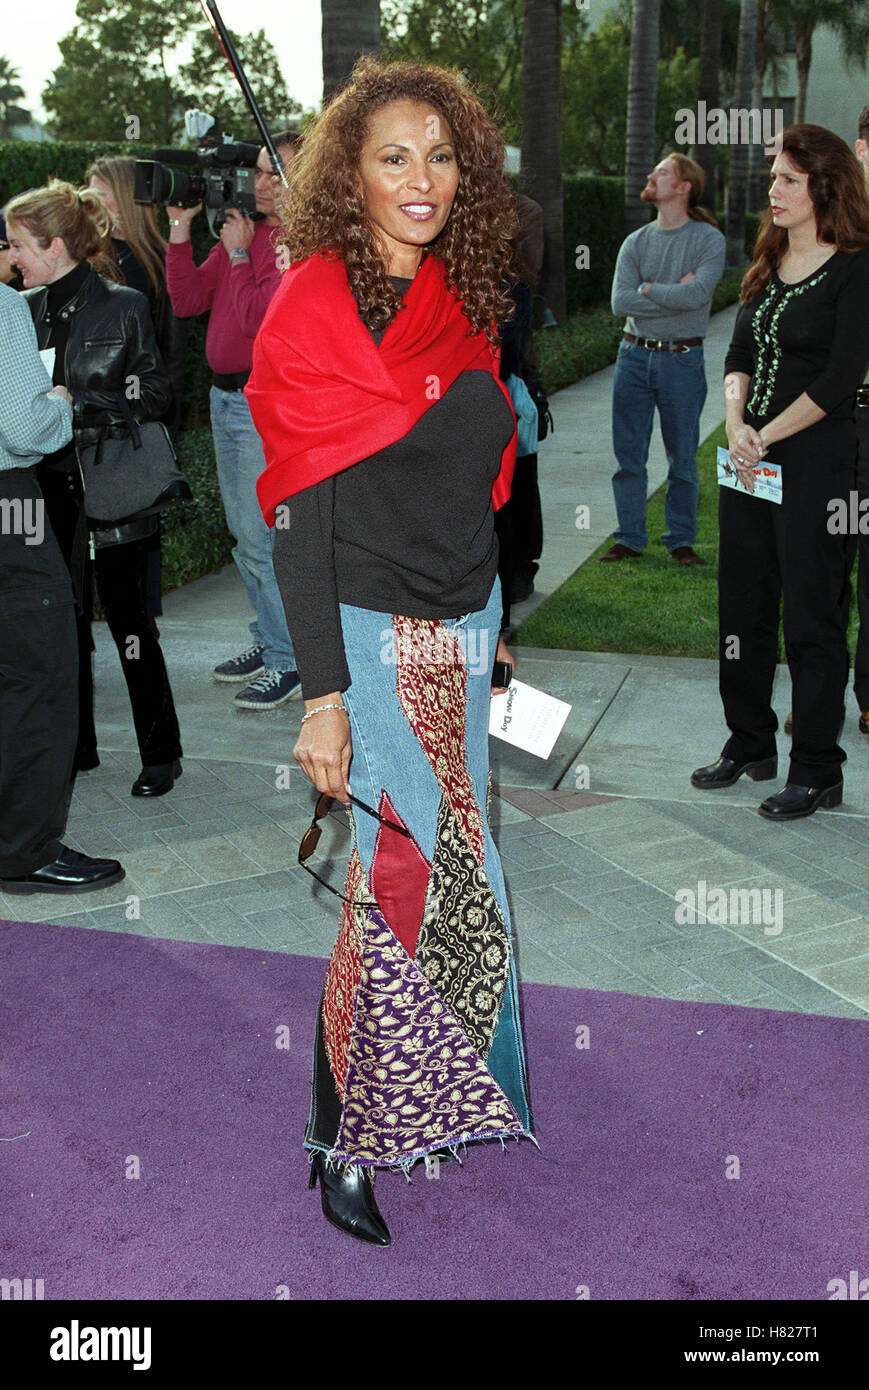 PAM GRIER LOS ANGELES USA 17 February 2000 - Stock Image